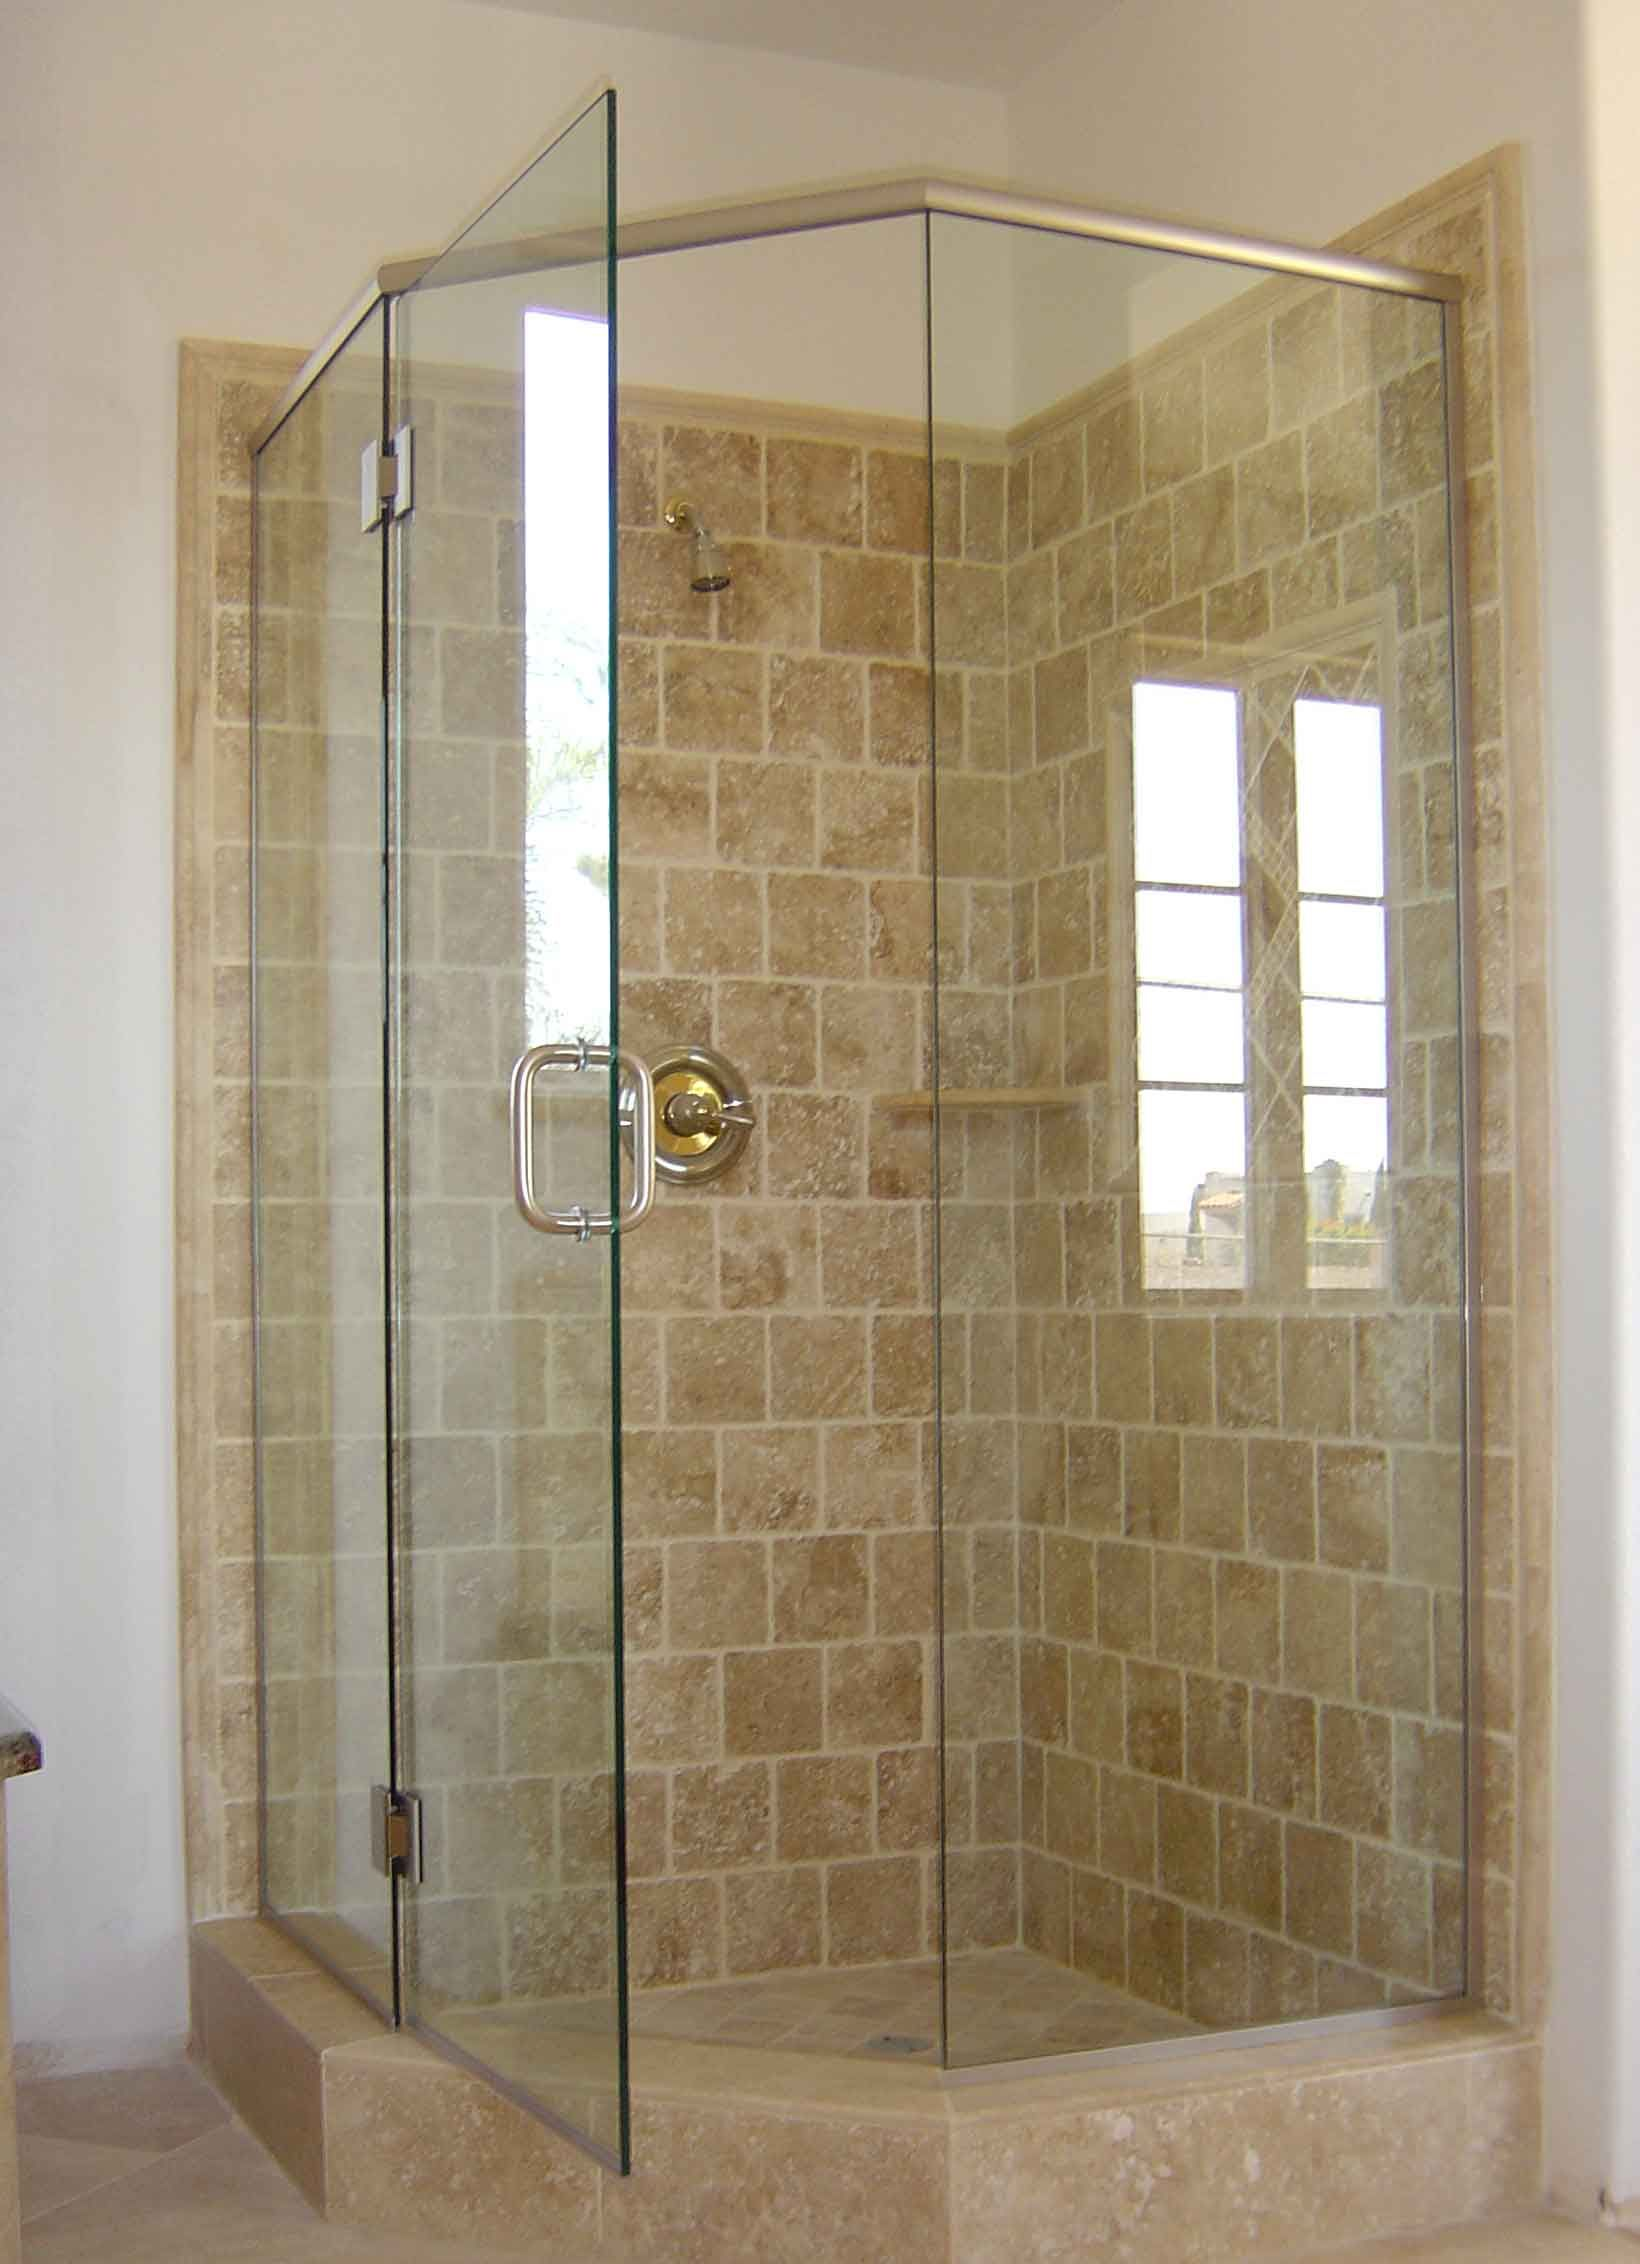 Upstairs bathroom corner shower pinteres for Bathroom design kit